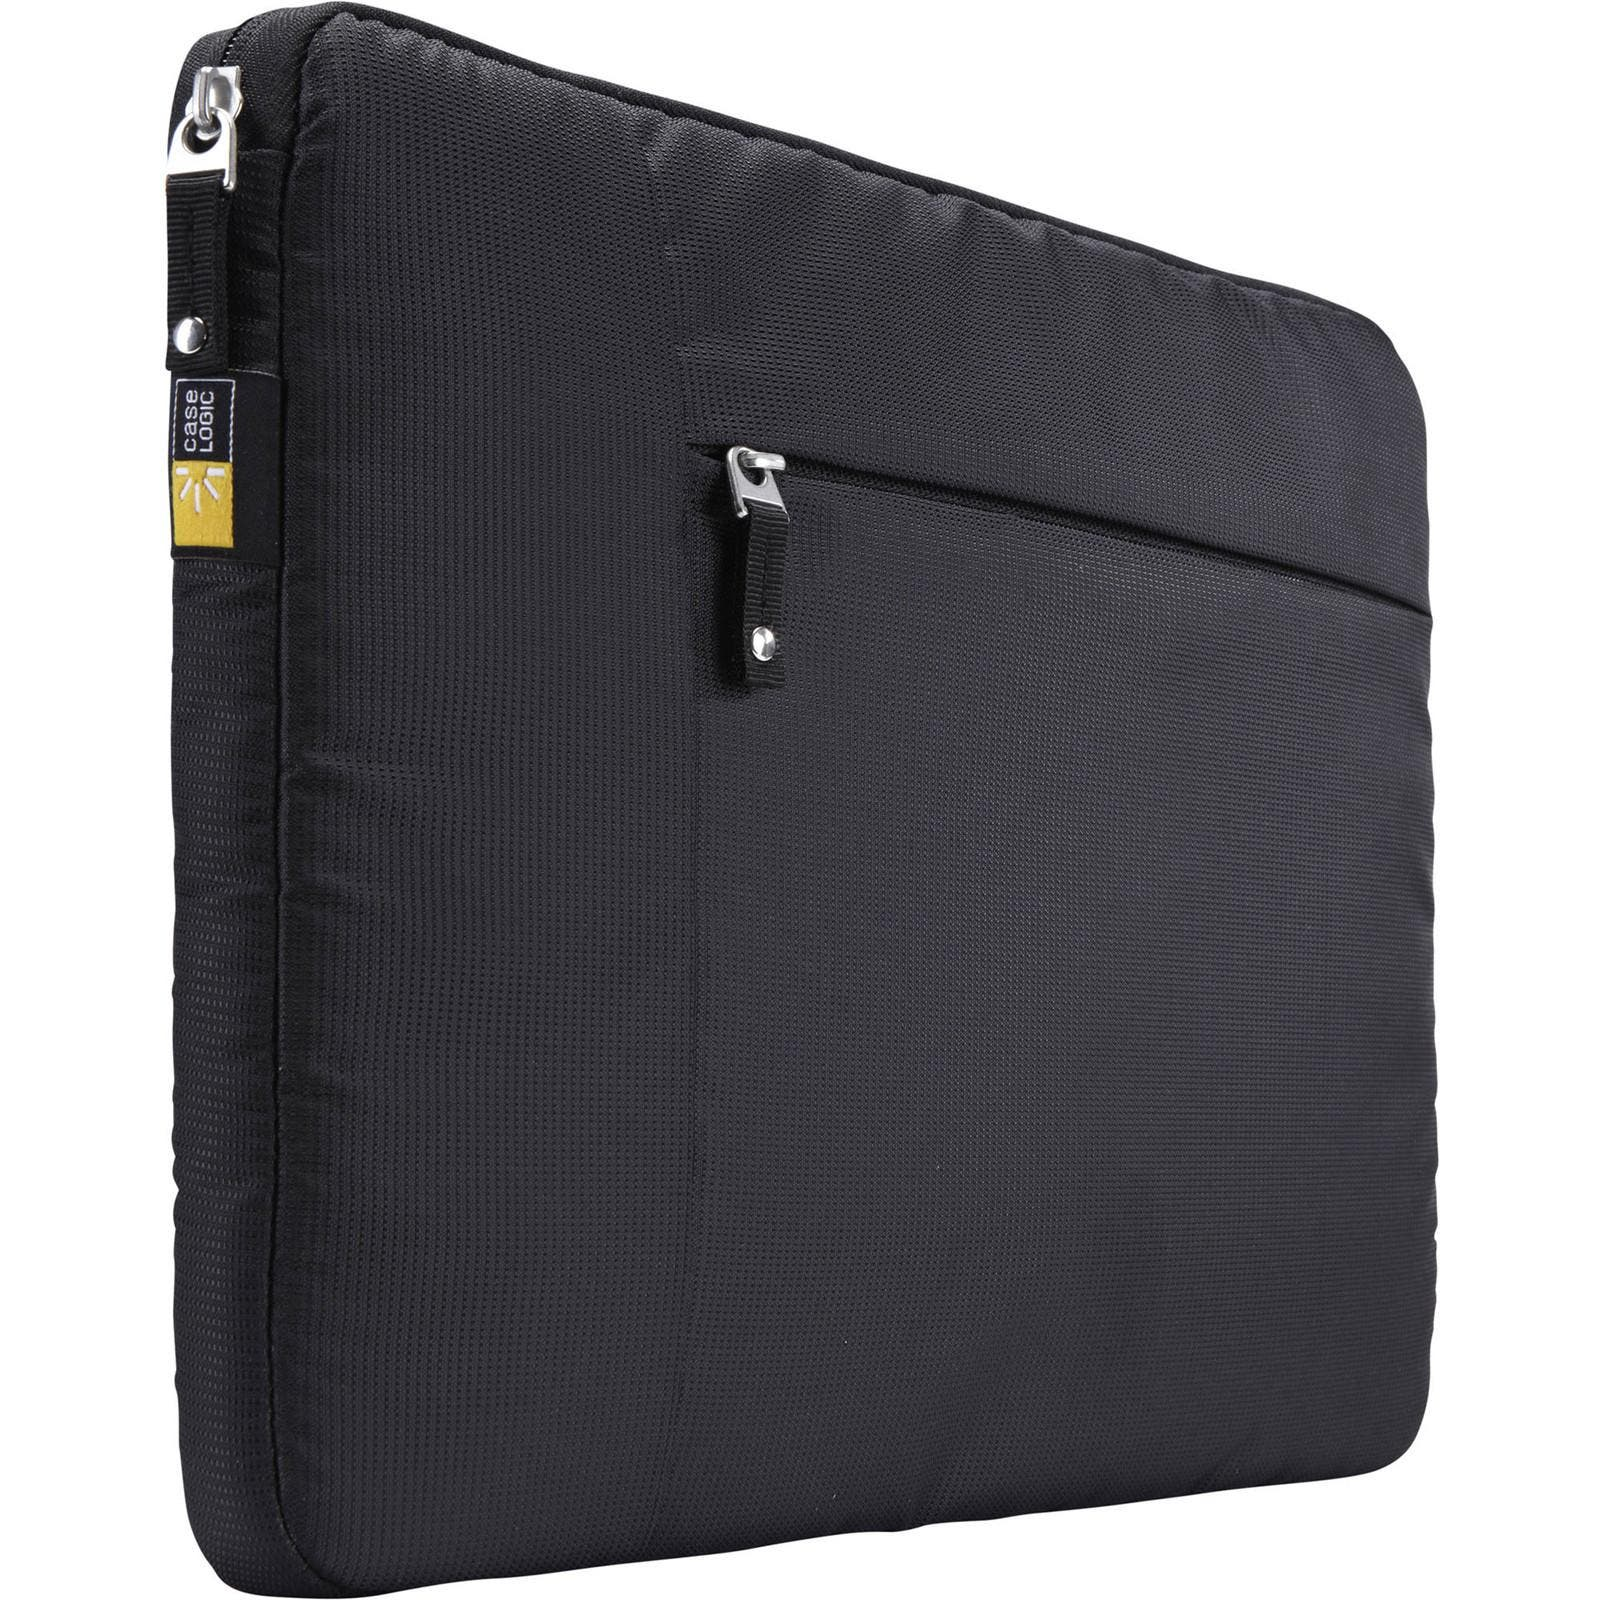 Case Logic Sleeve for 15  Laptops with 10.1  Tablet Pocket - Black Highlights    * Case Logic Sleeve for 15  Laptops with 10.1  Tablet Pocket – Black   * Dimensions: 31cm x 3cm x 41cm  * Weight: 0.3KGM      1 Year Manufacturer Warranty